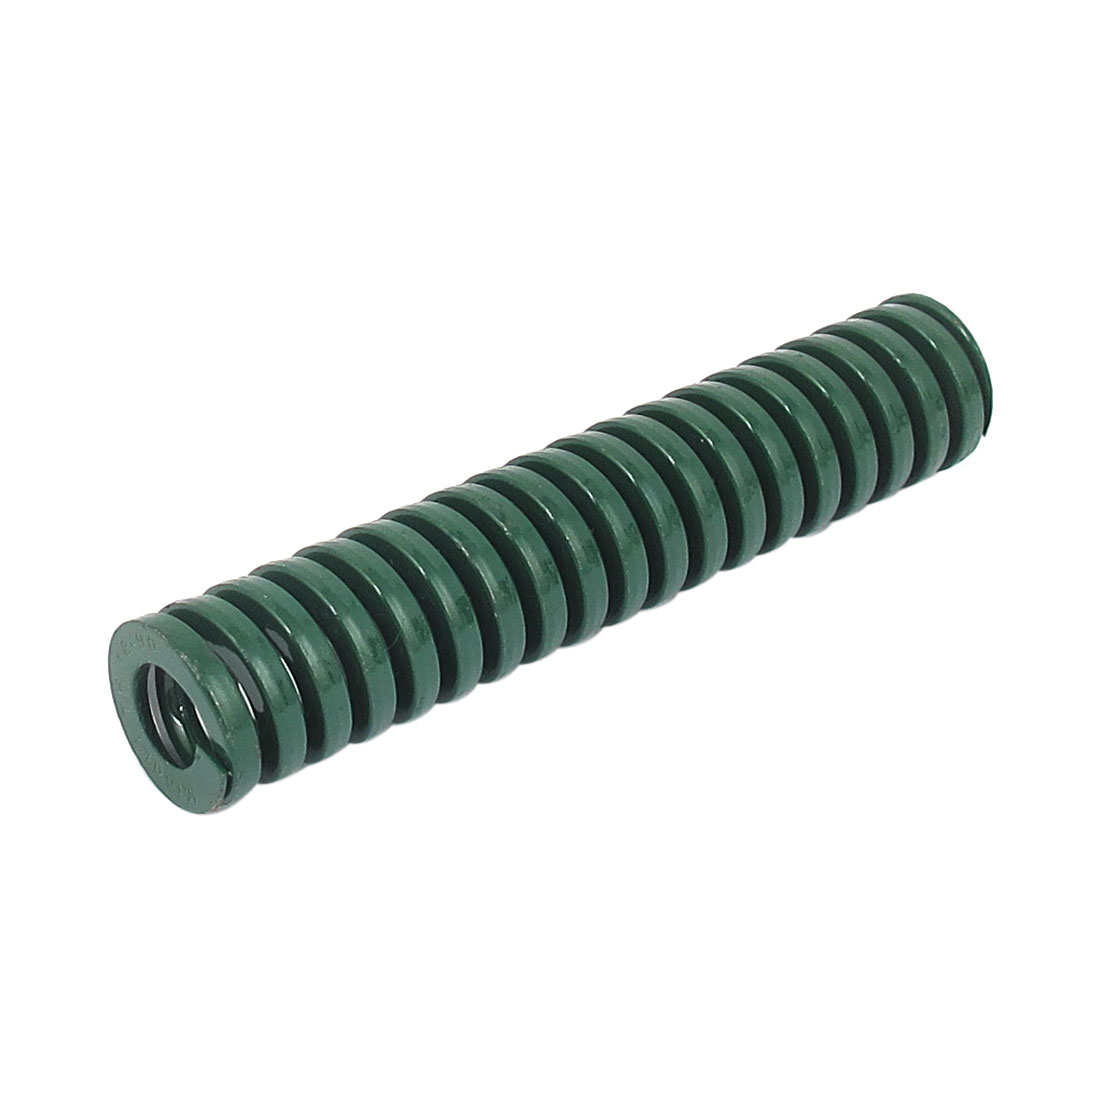 18mmx90mm Chromium Alloy Steel Heavy Load Die Spring Green